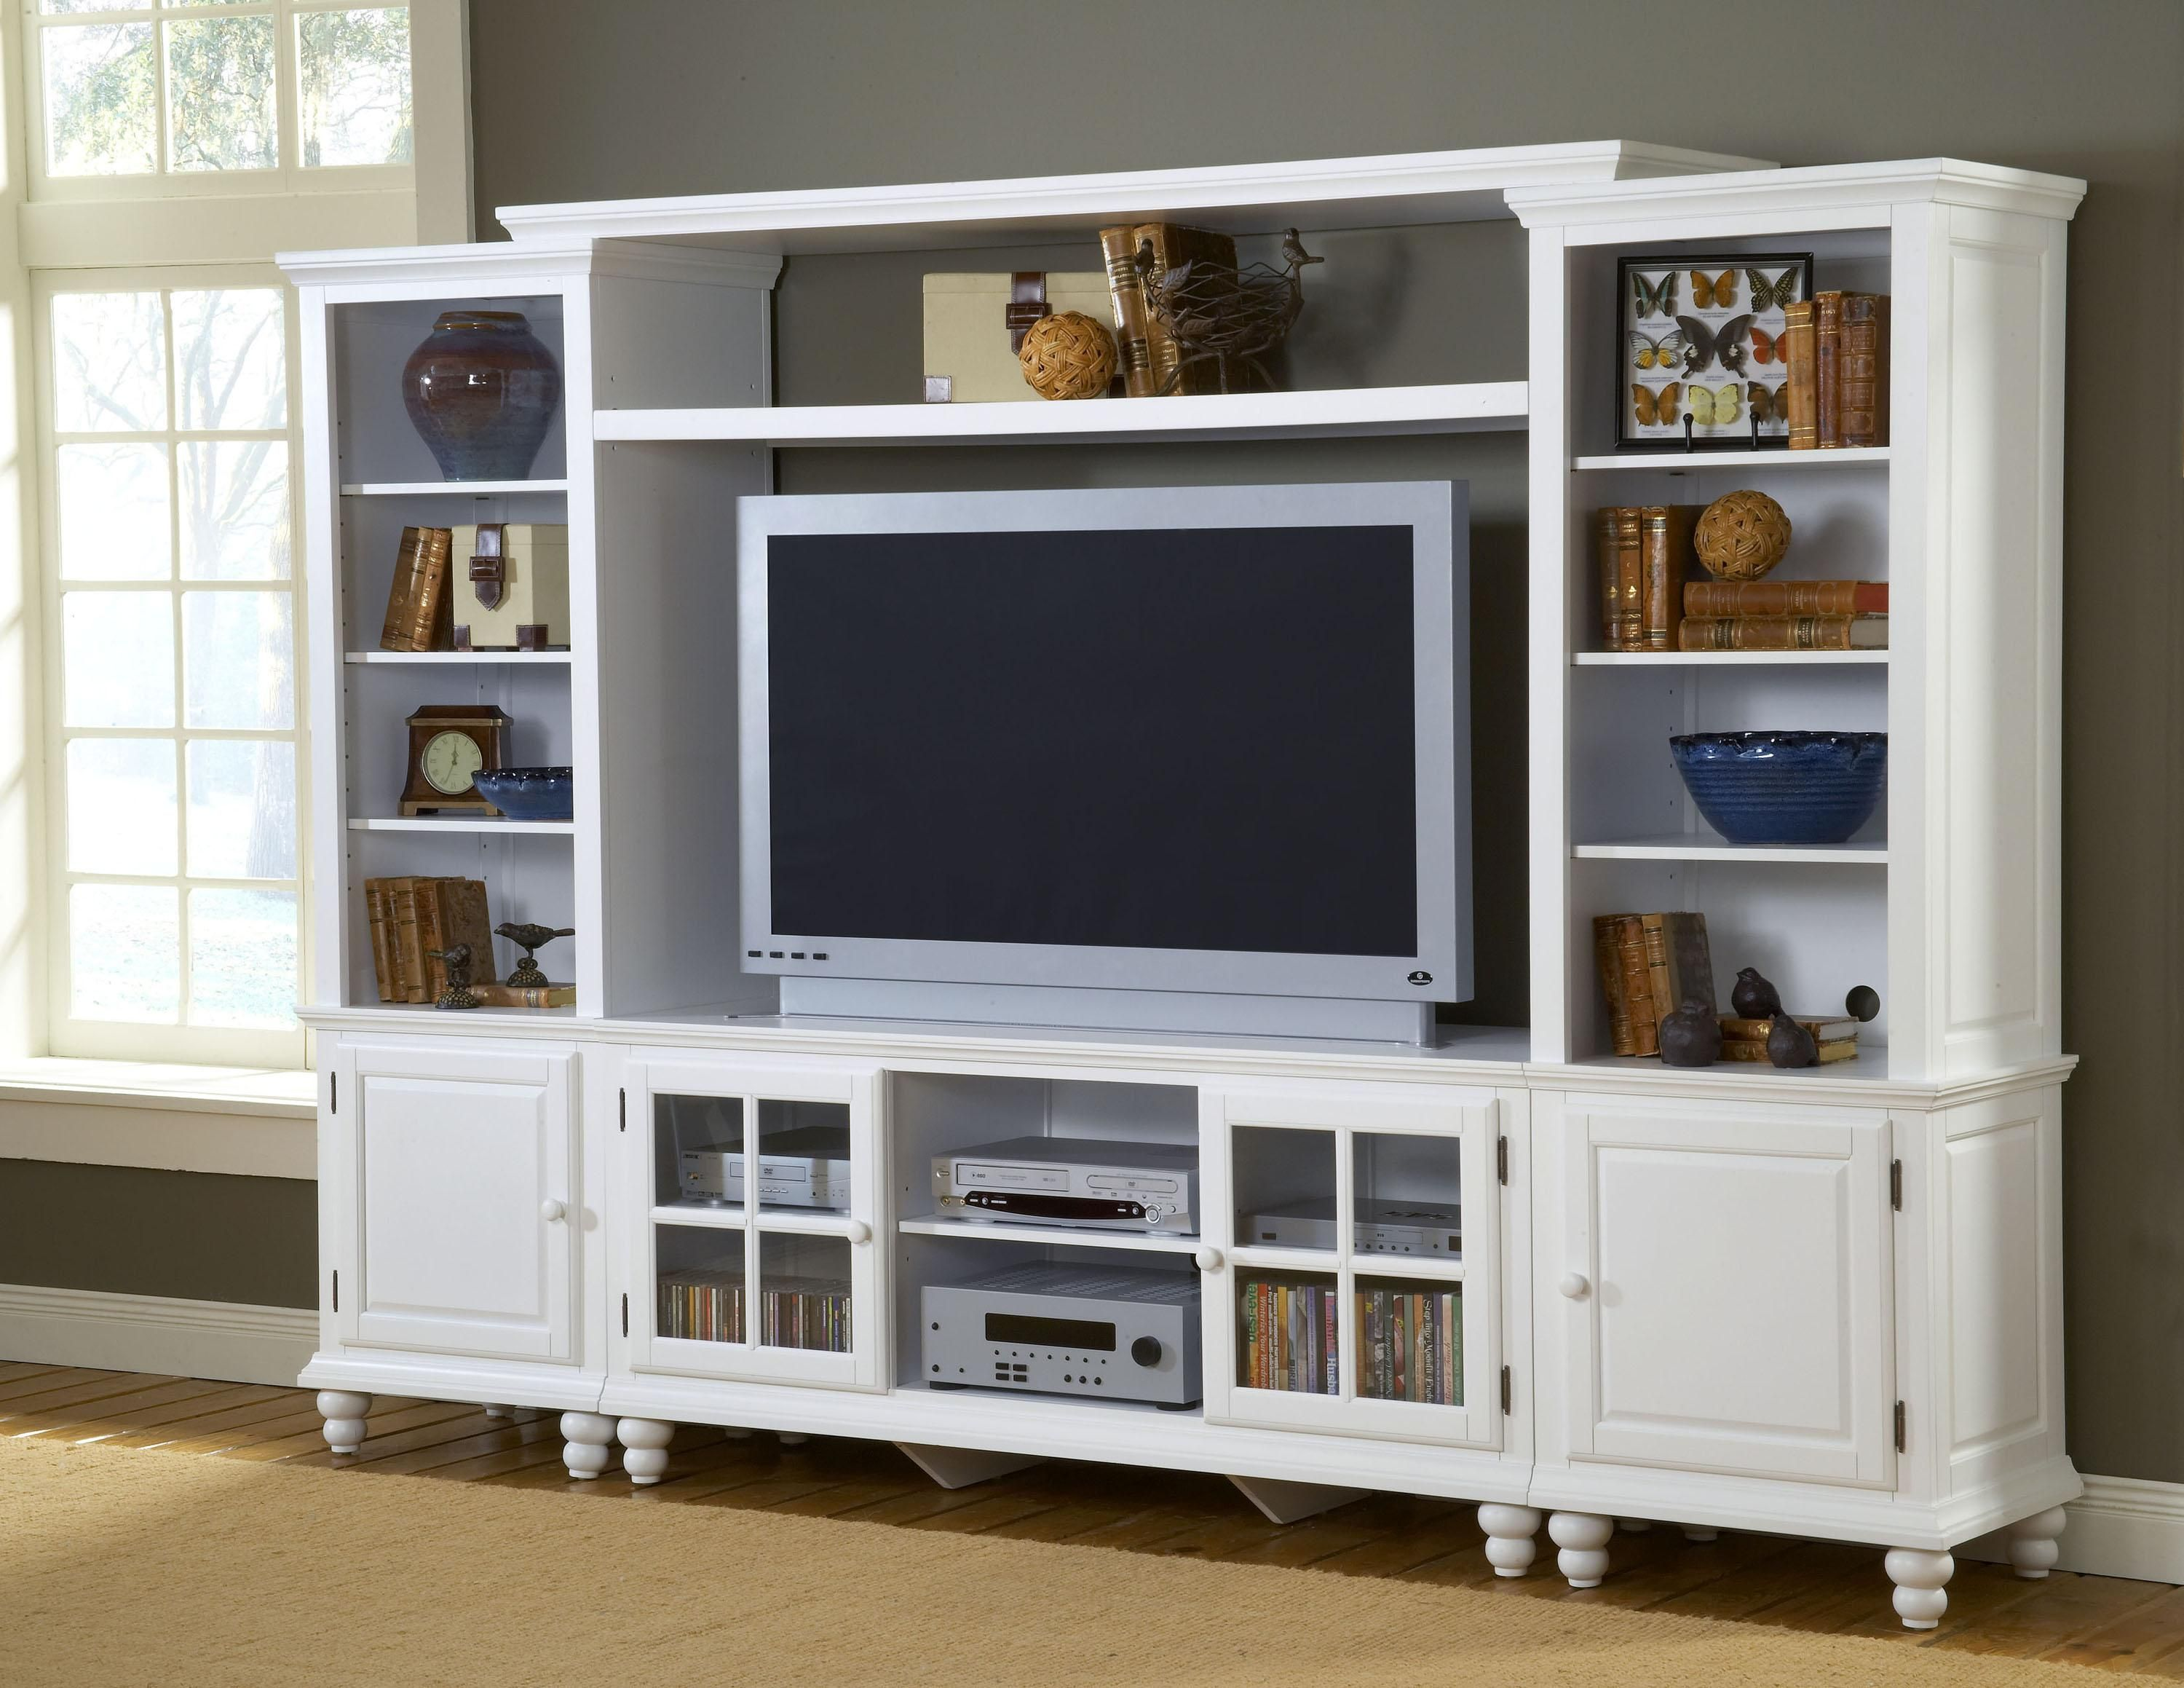 White Entertainment Wall Unit Grand Bay Large Entertainment Wall Unit White 6122lec